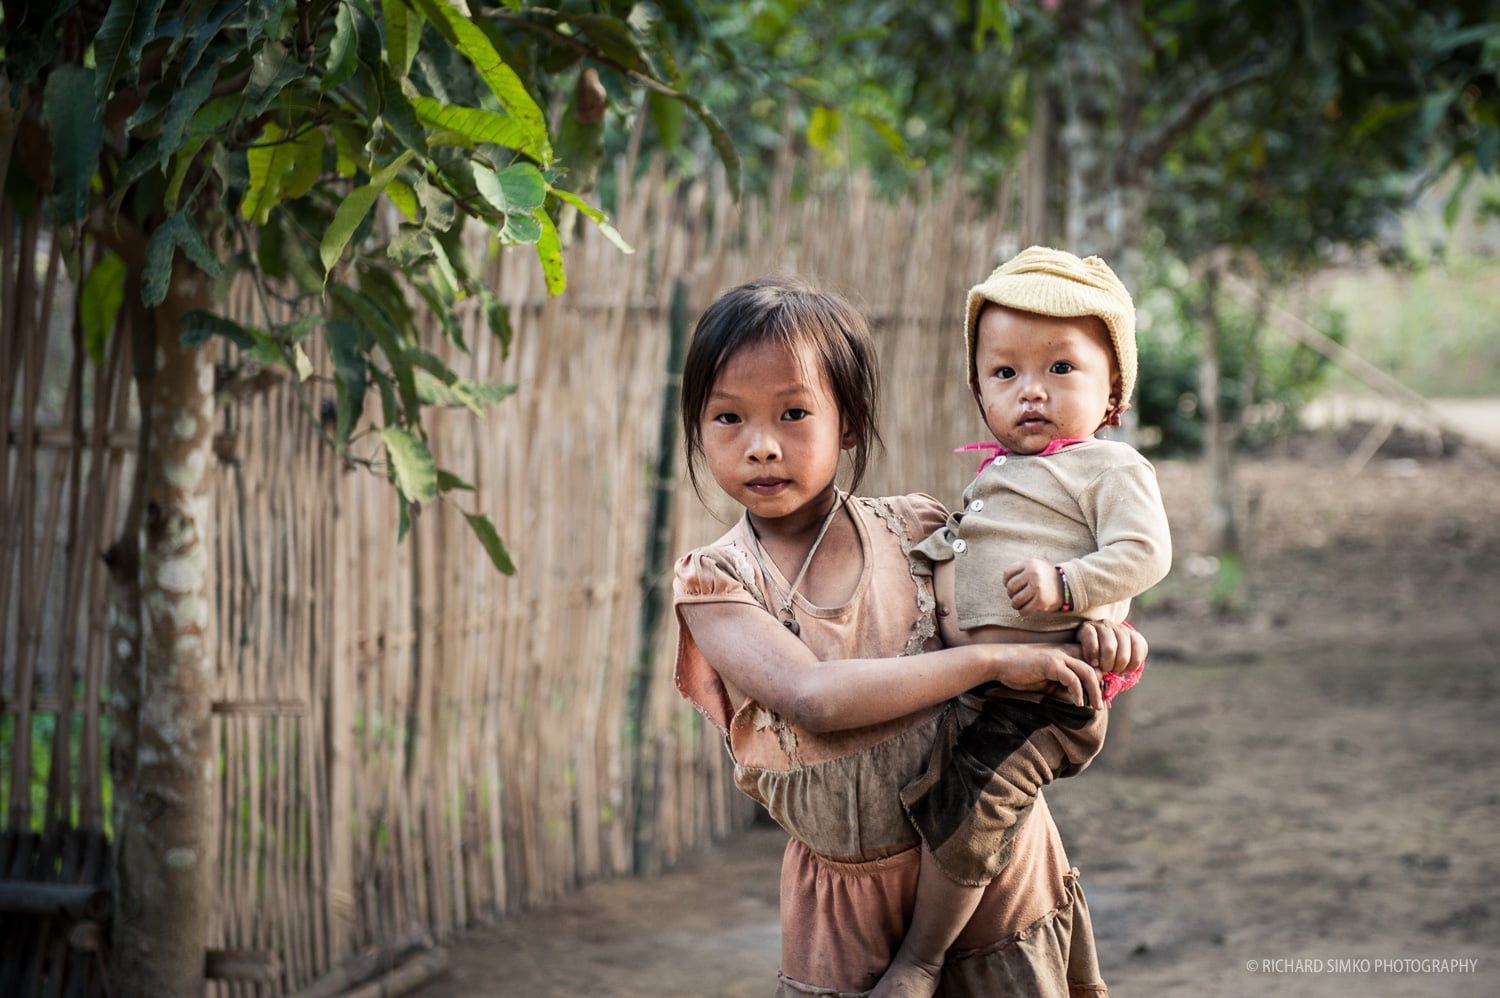 children-of-asia-021.jpg